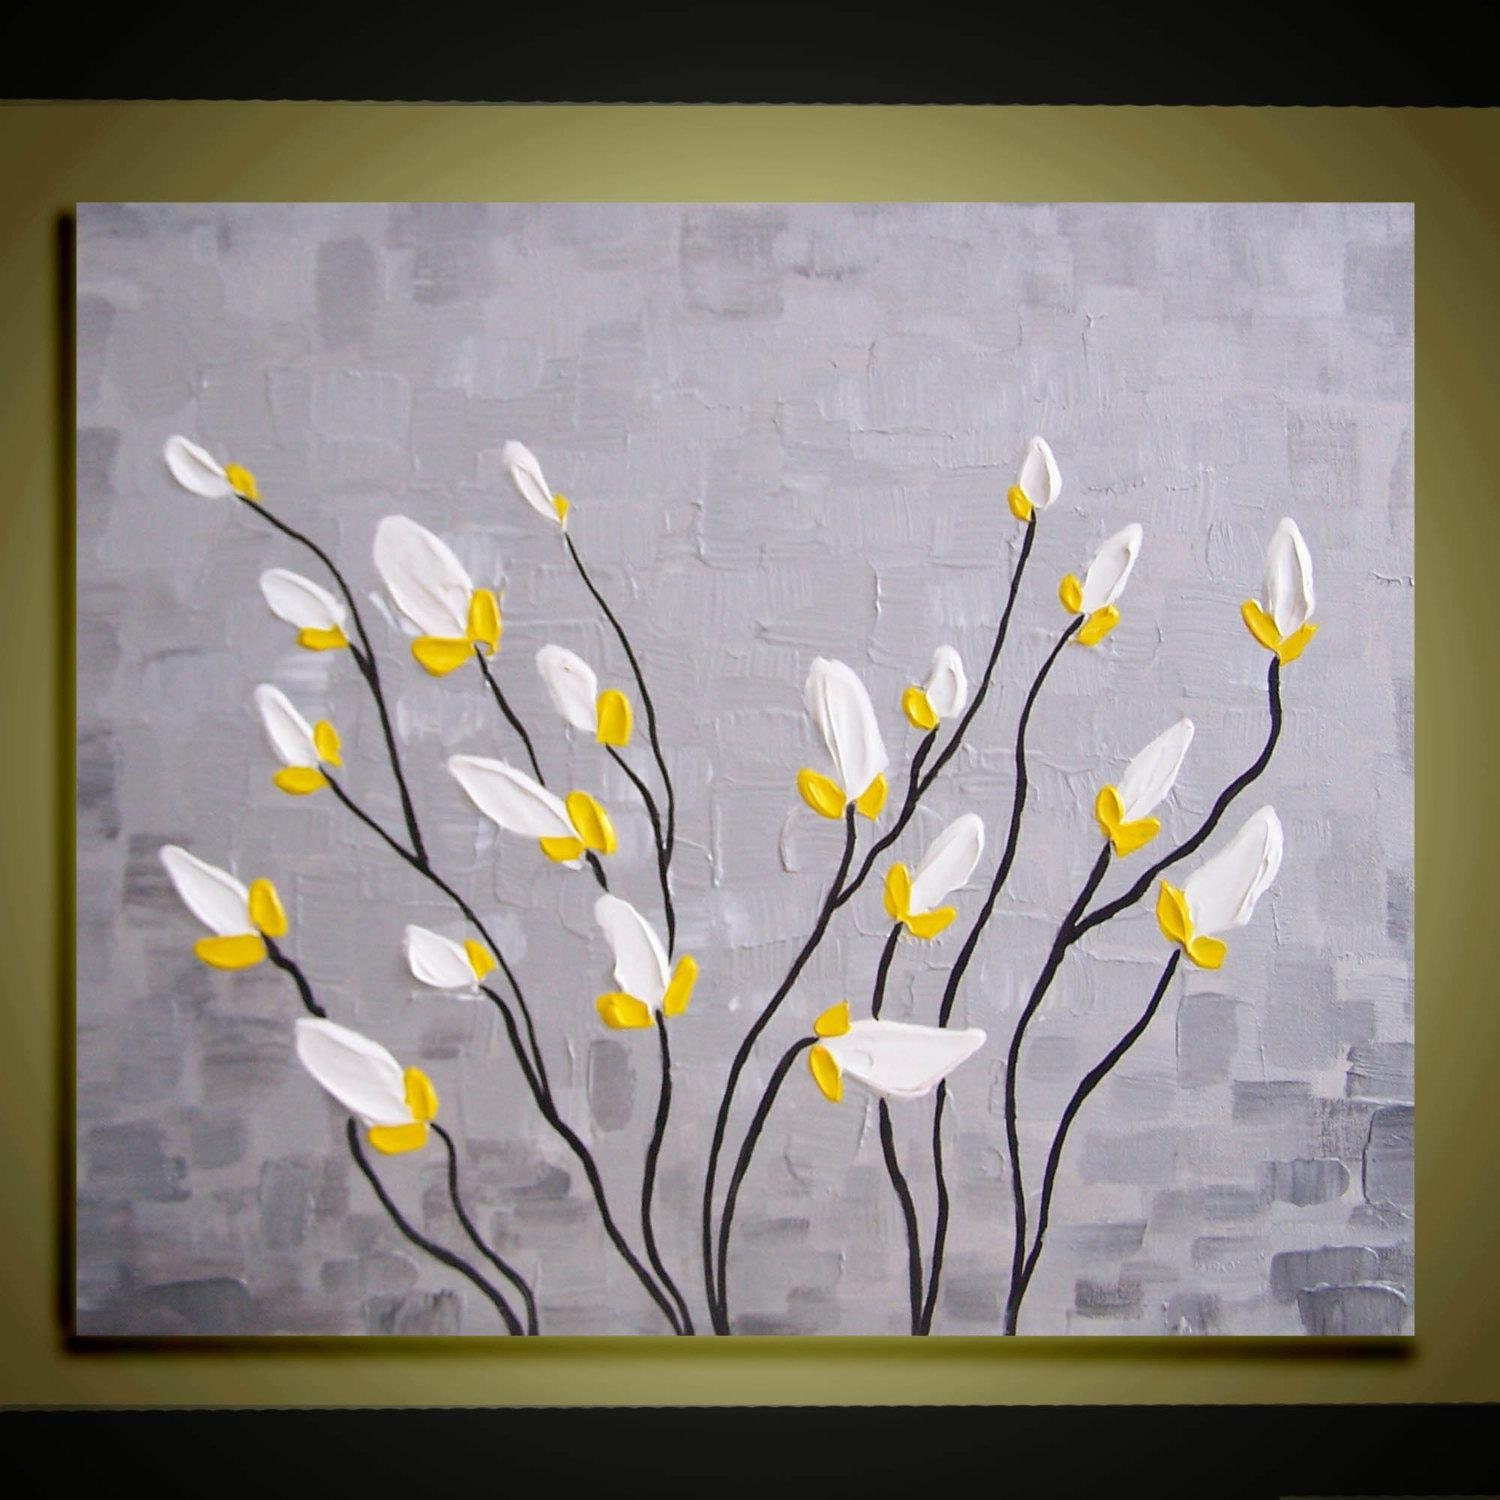 Abstract Oil Painting Contemporary White Flowers Landscape Etsy